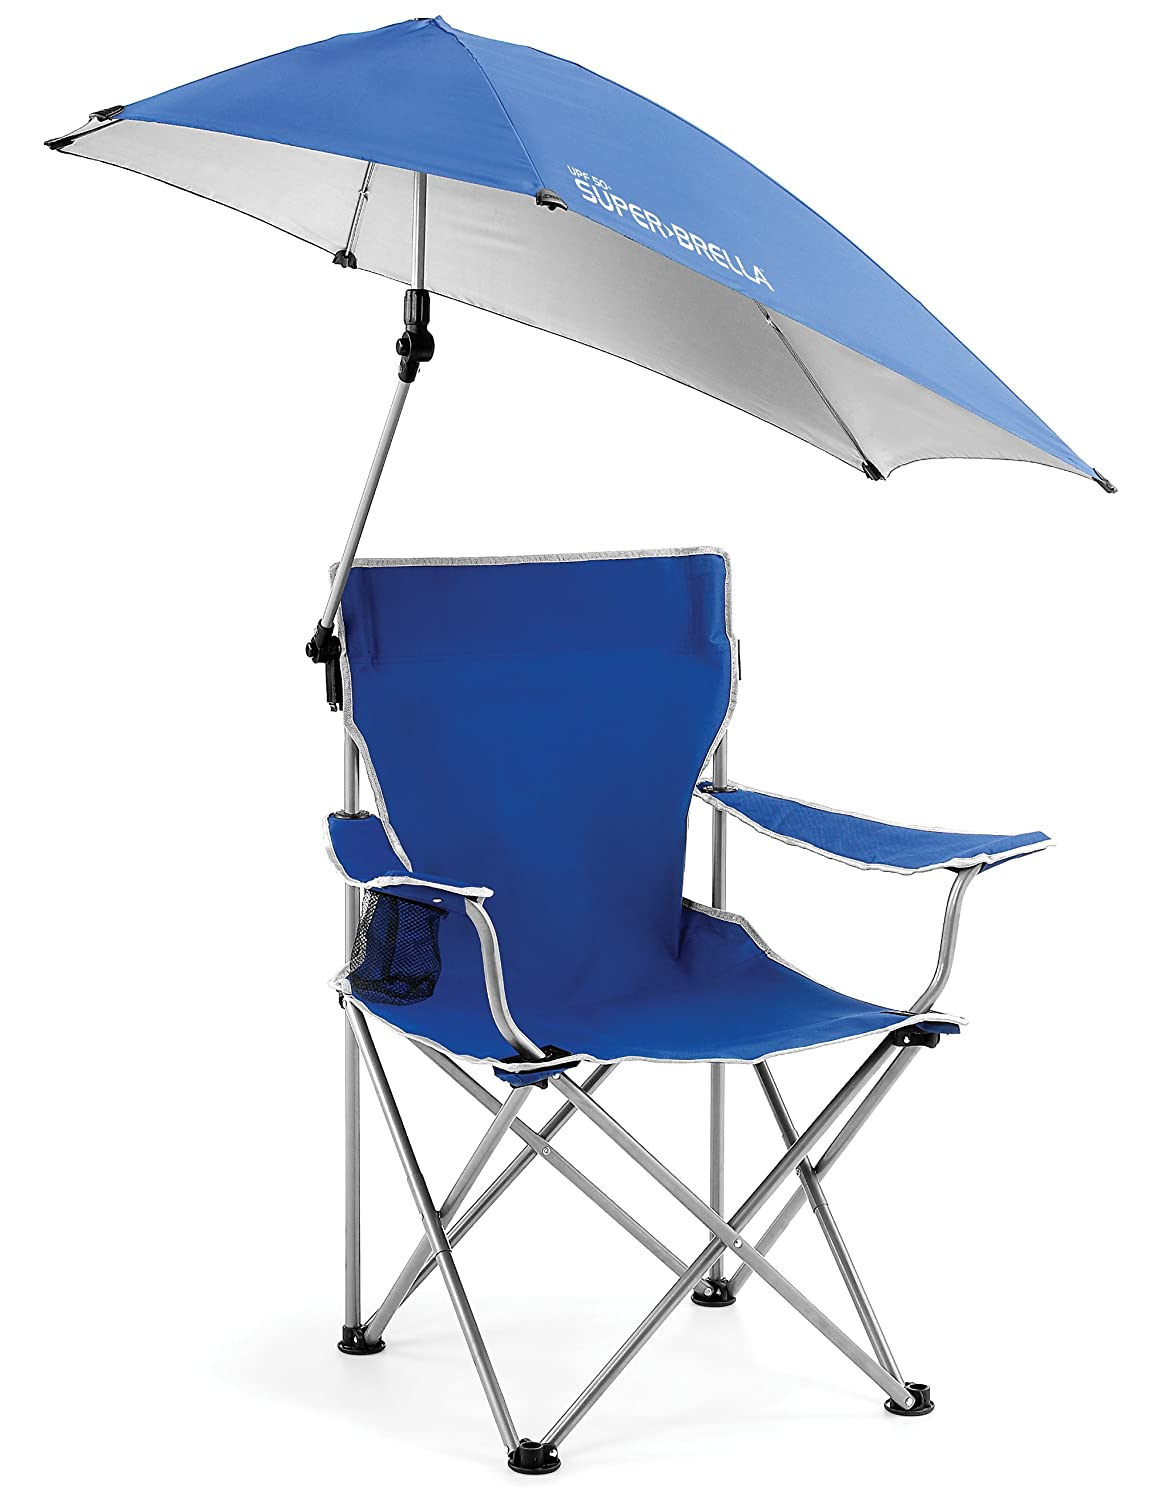 Folding Chairs With Umbrella Books And Movies Reviews Product Quotsuper Brella Umbrella